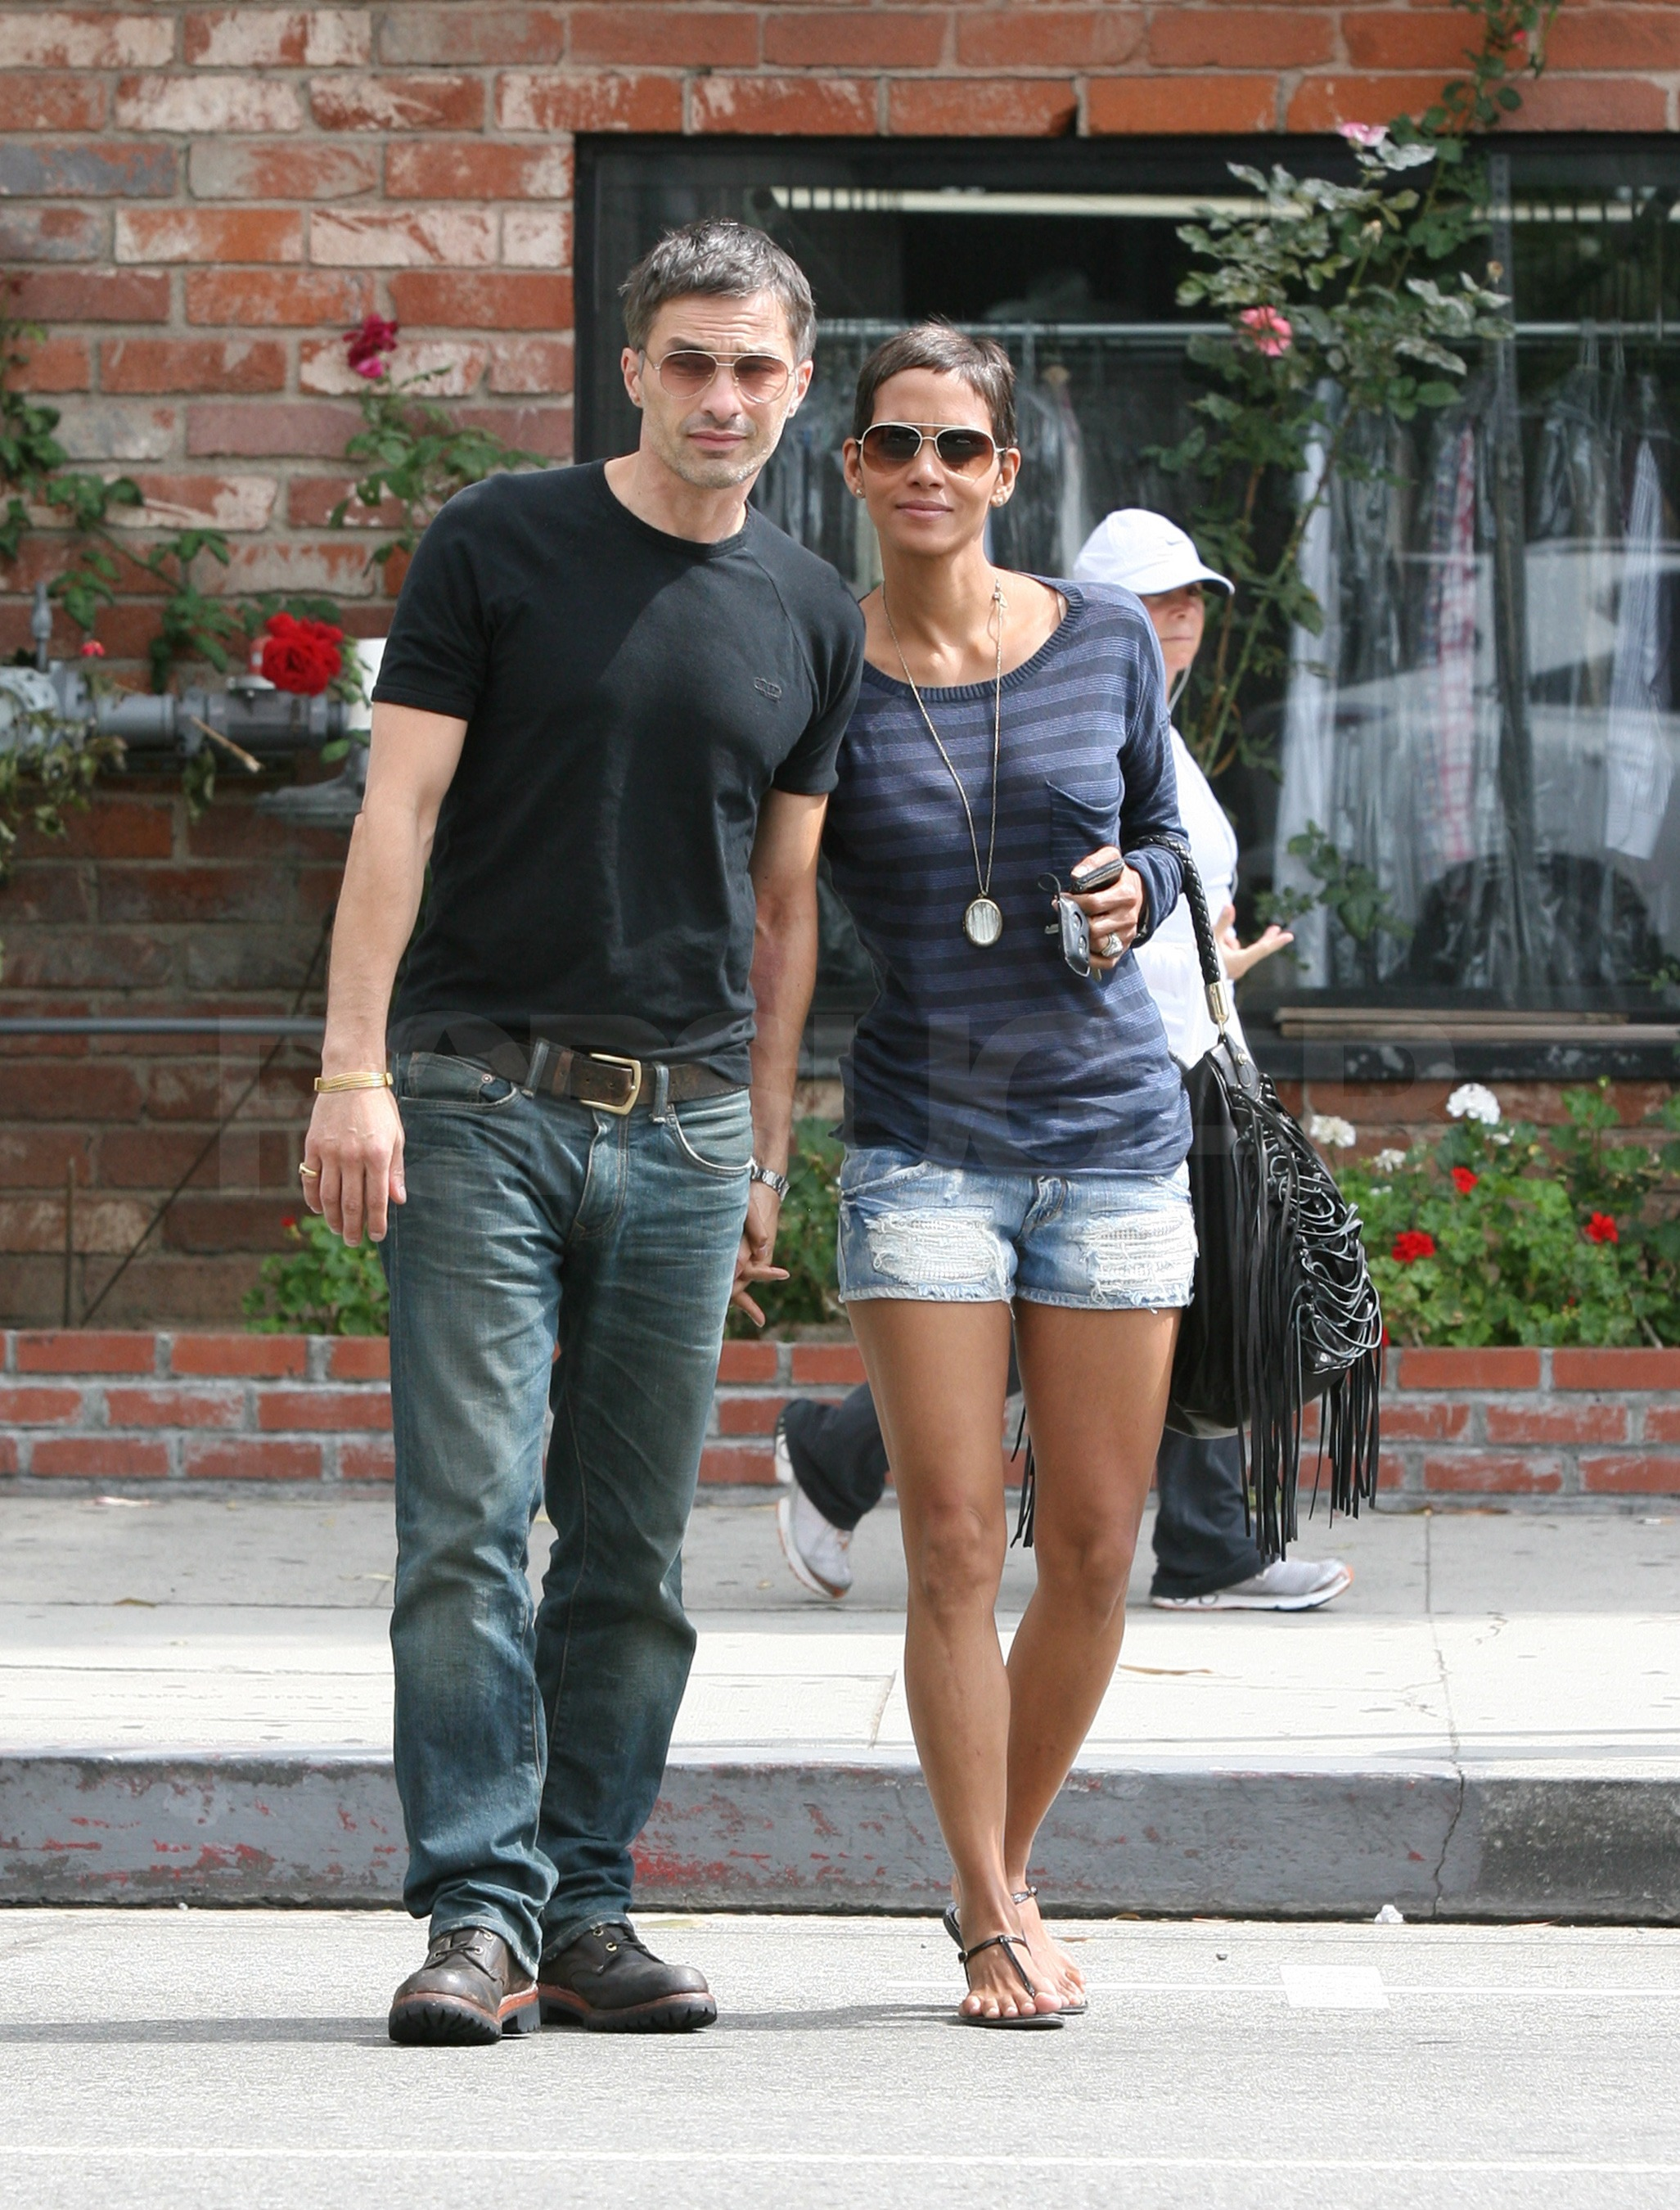 Halle Berry and Olivier Martinez carefully crossed the street together.